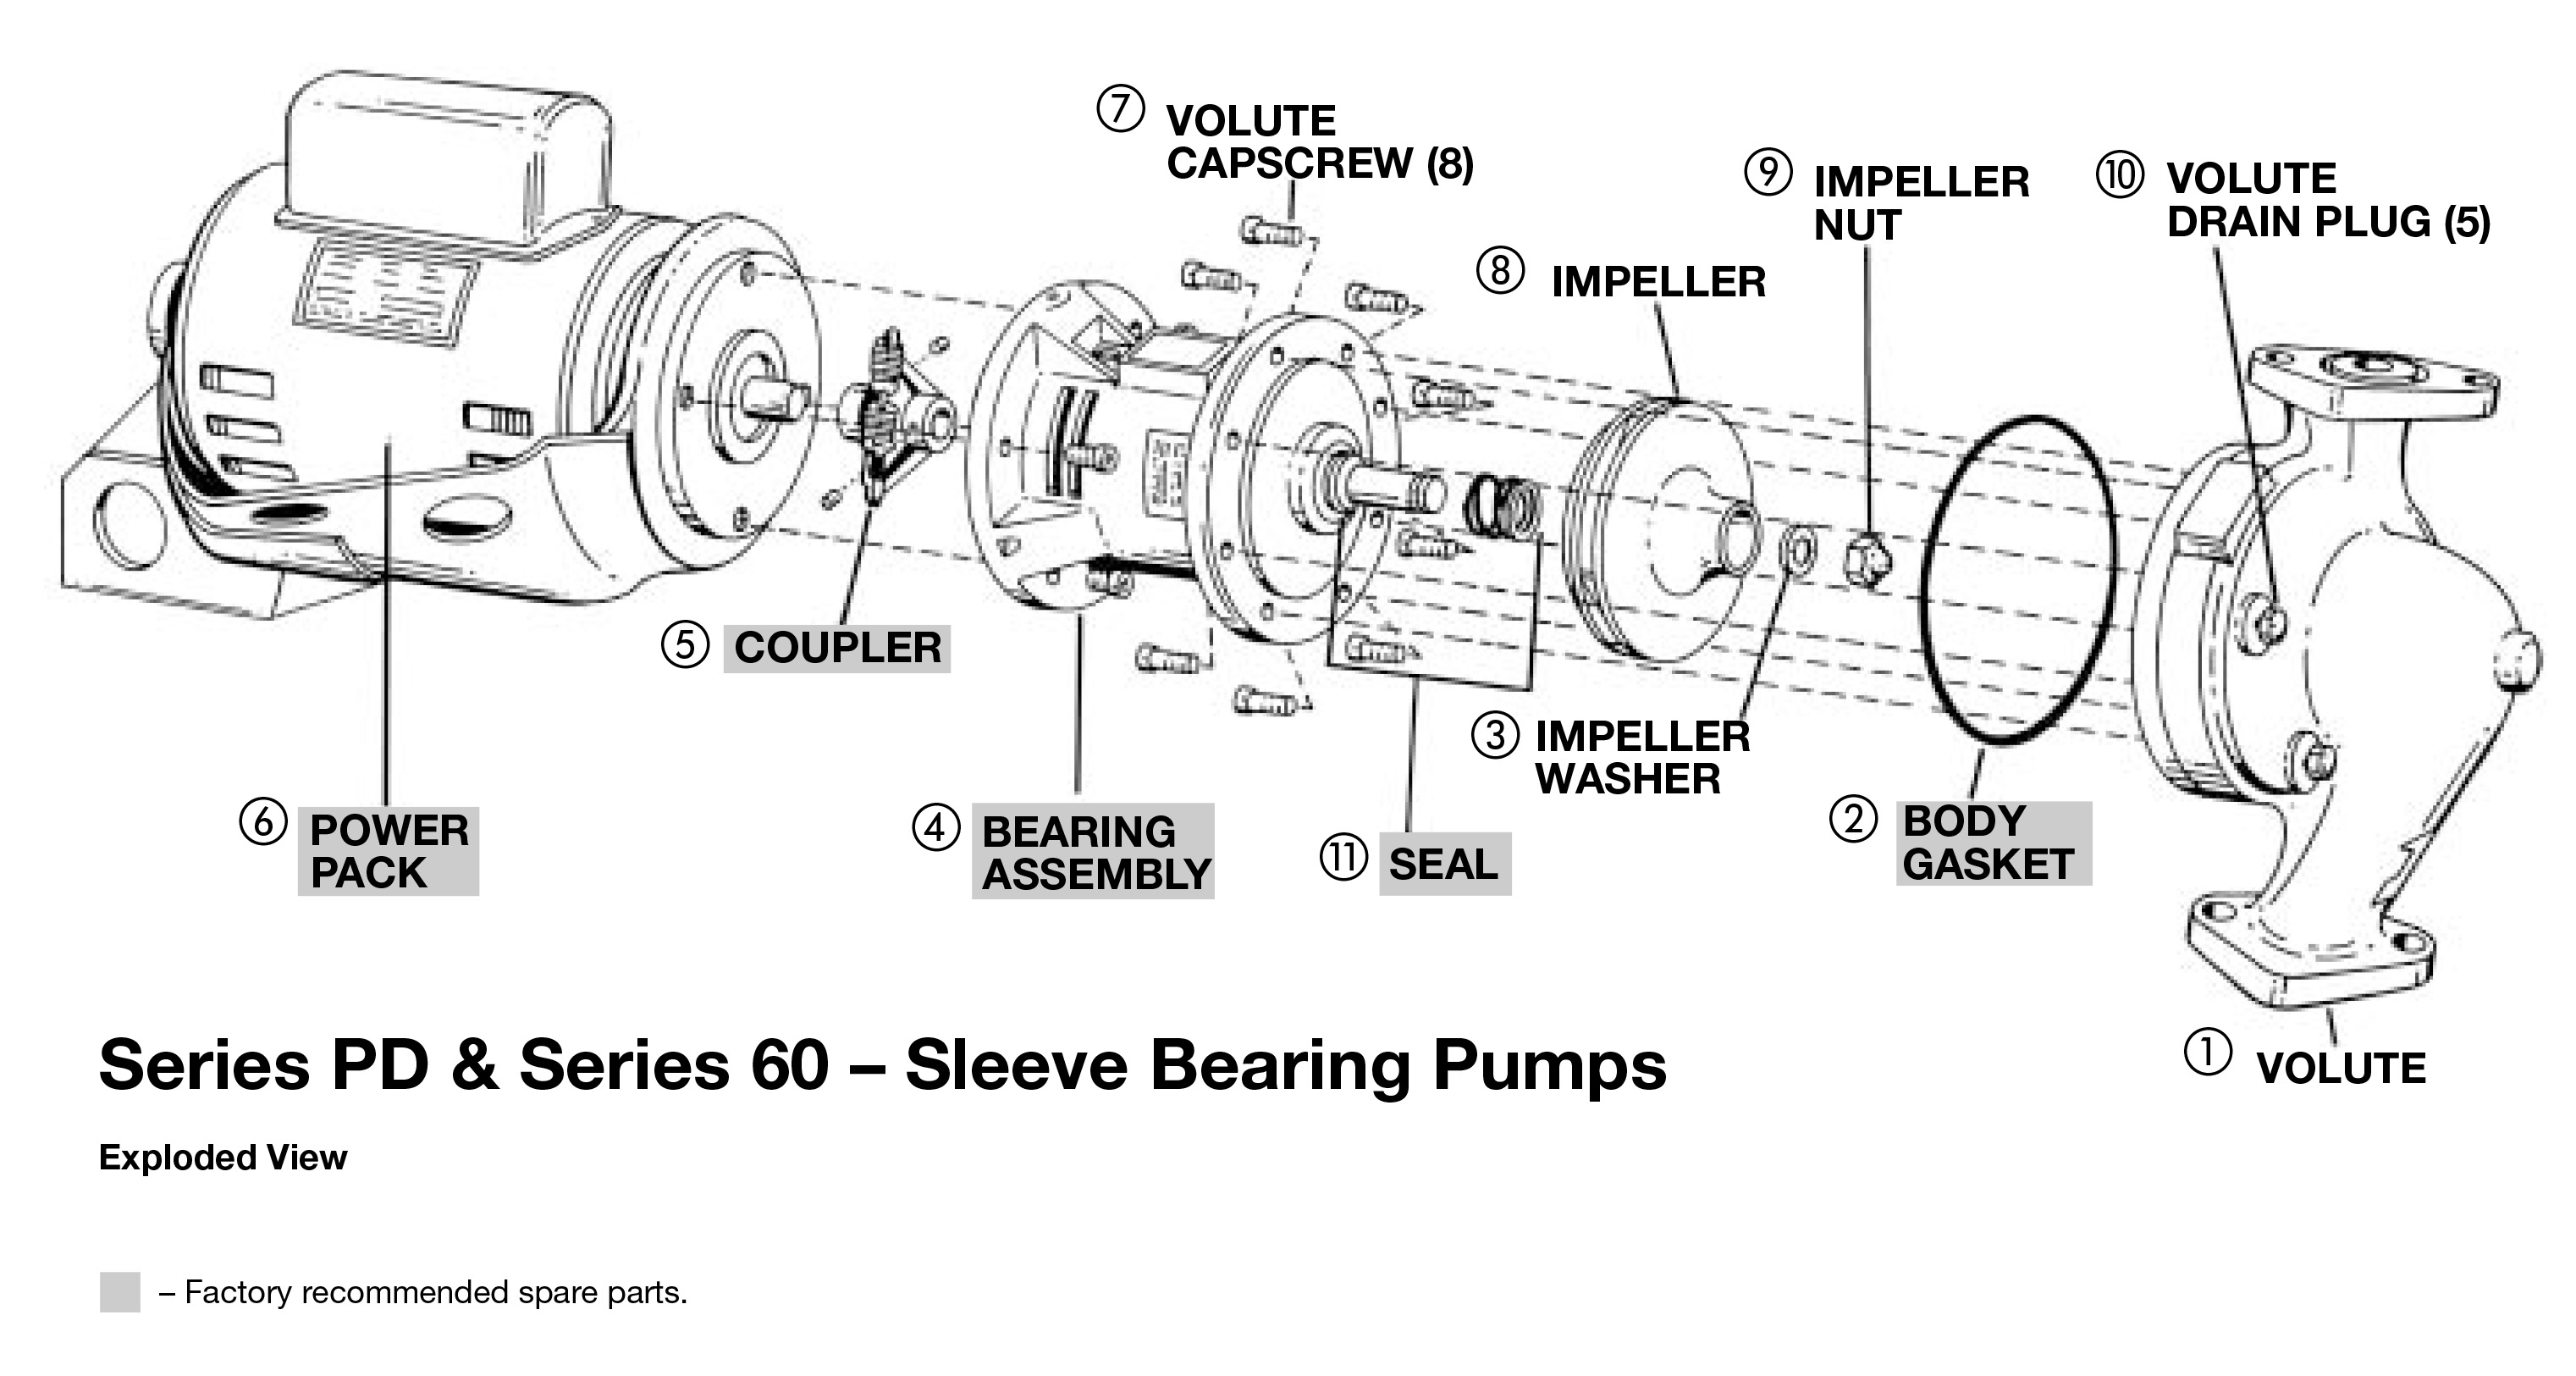 Bell Amp Gossett Series 60 In Line Centrifugal Pumps